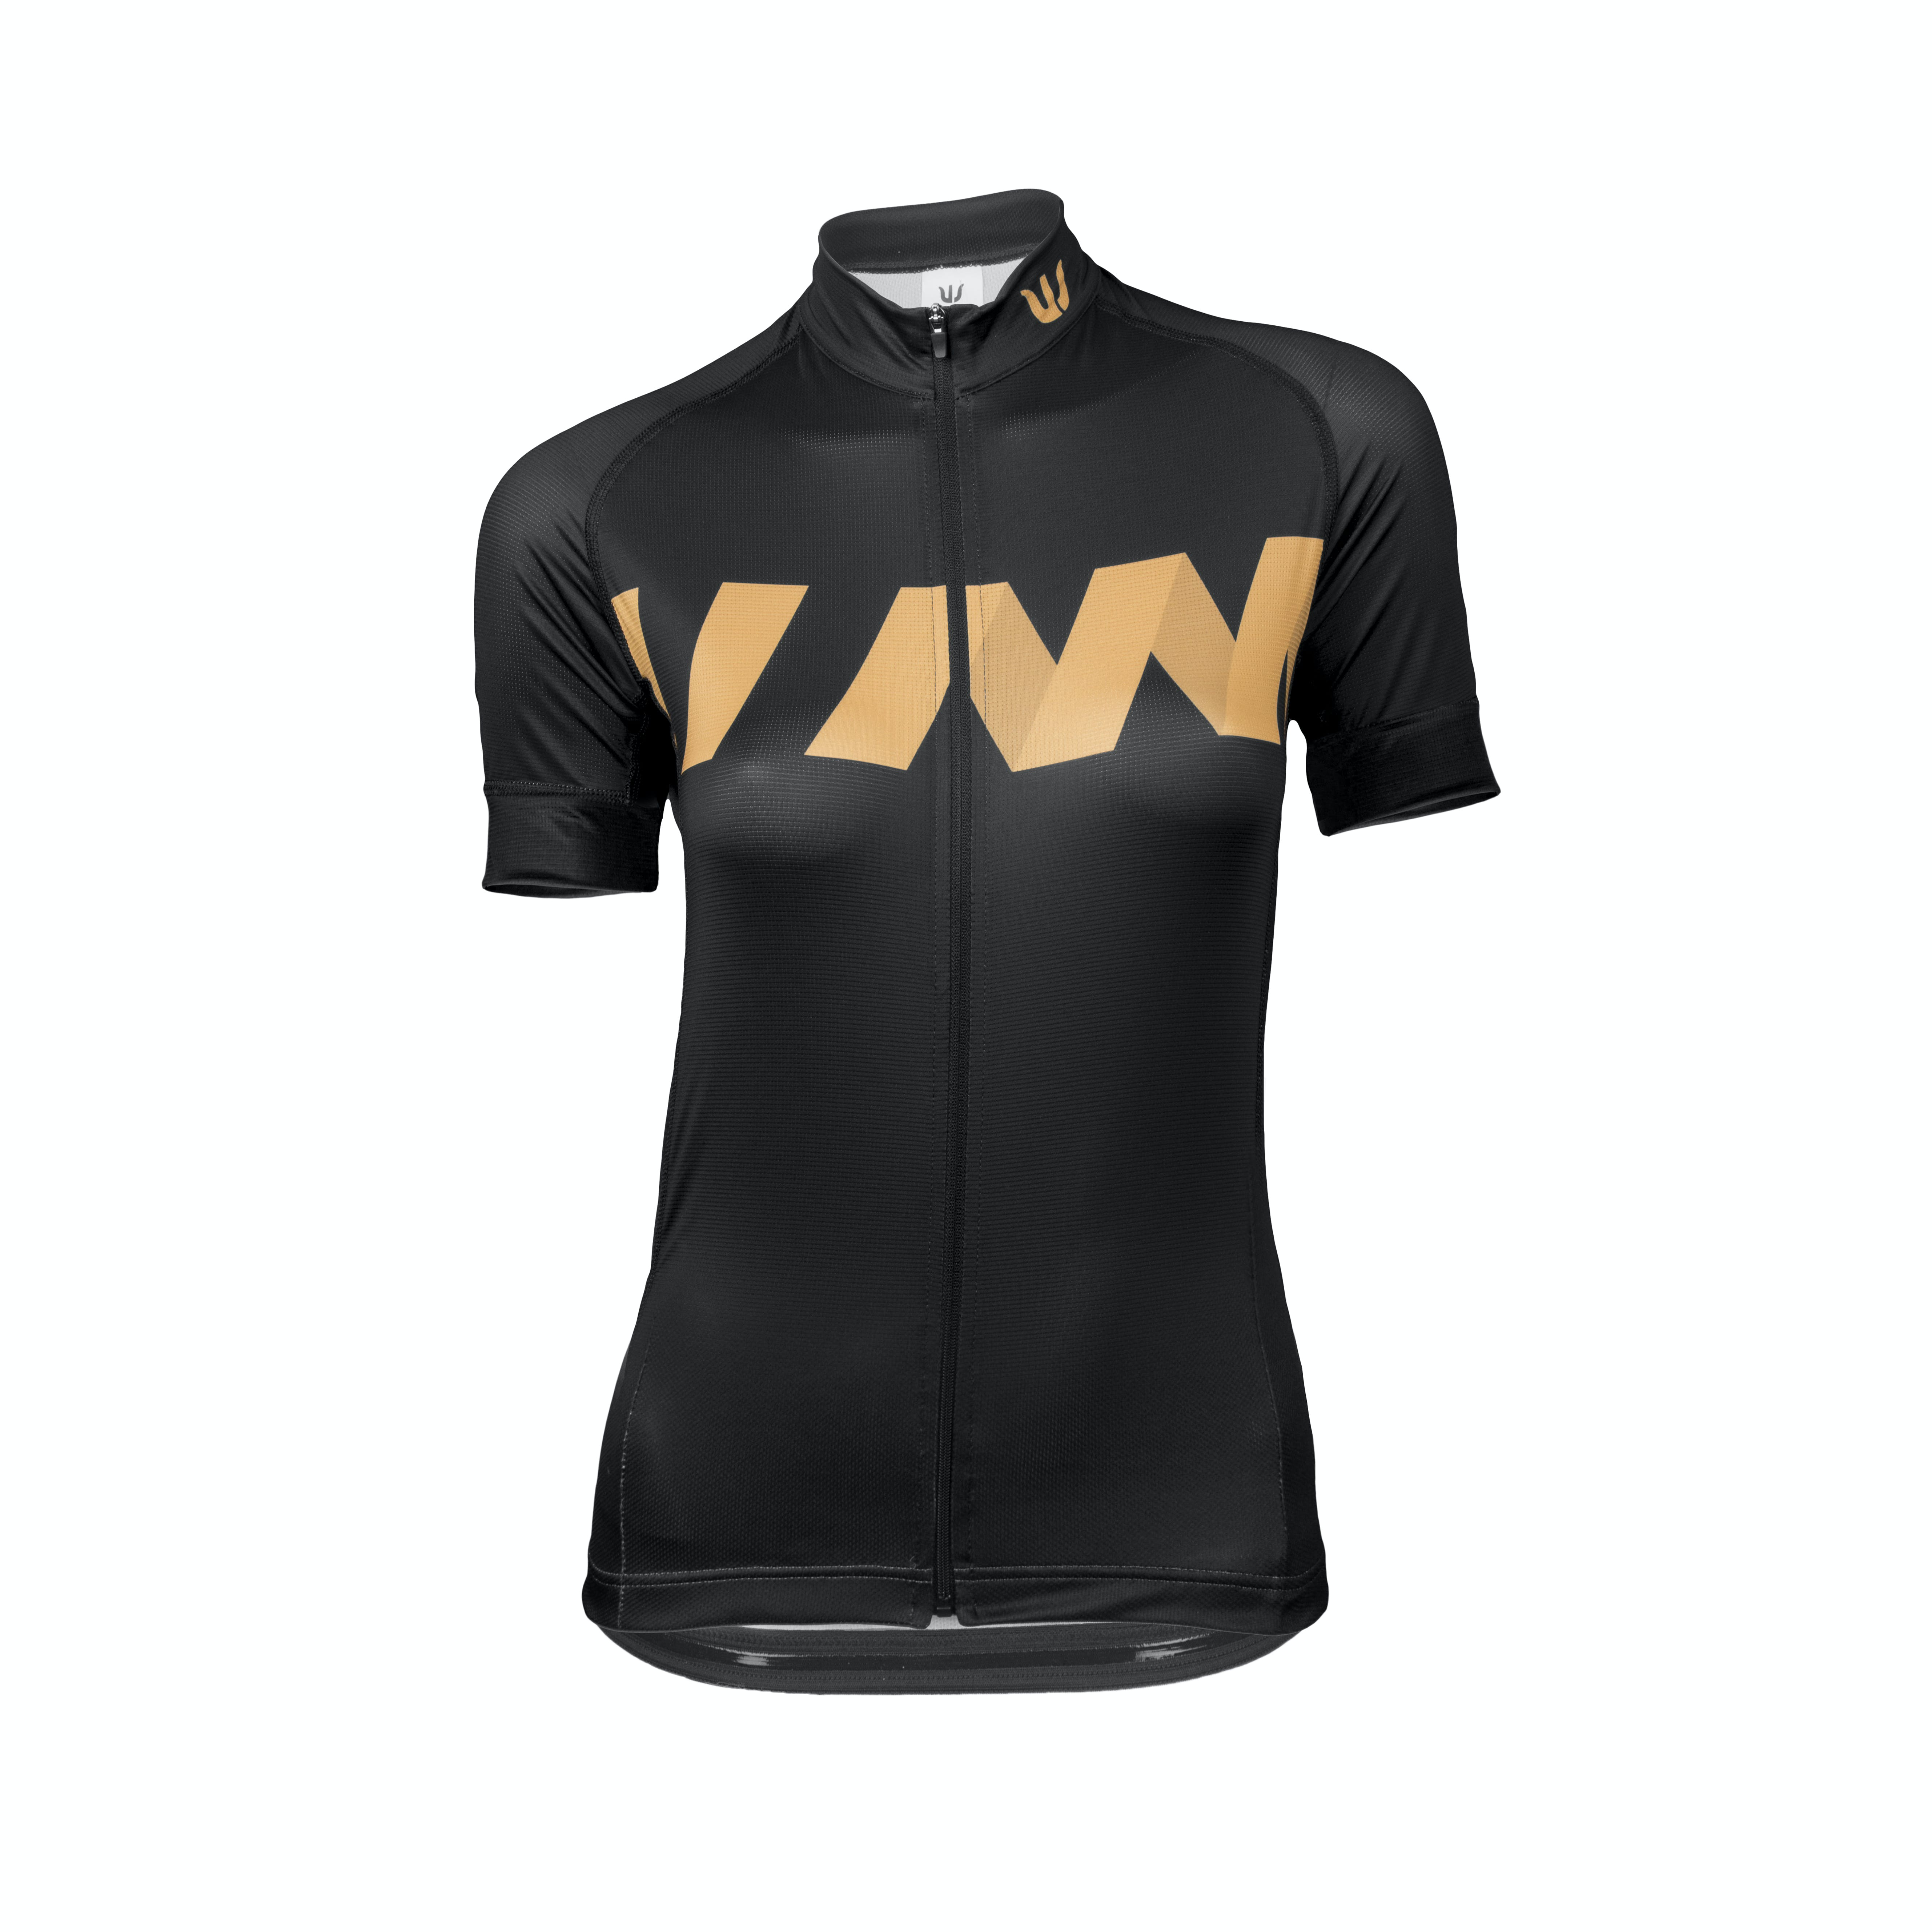 WINN Jersey Short Sleeves SP.L